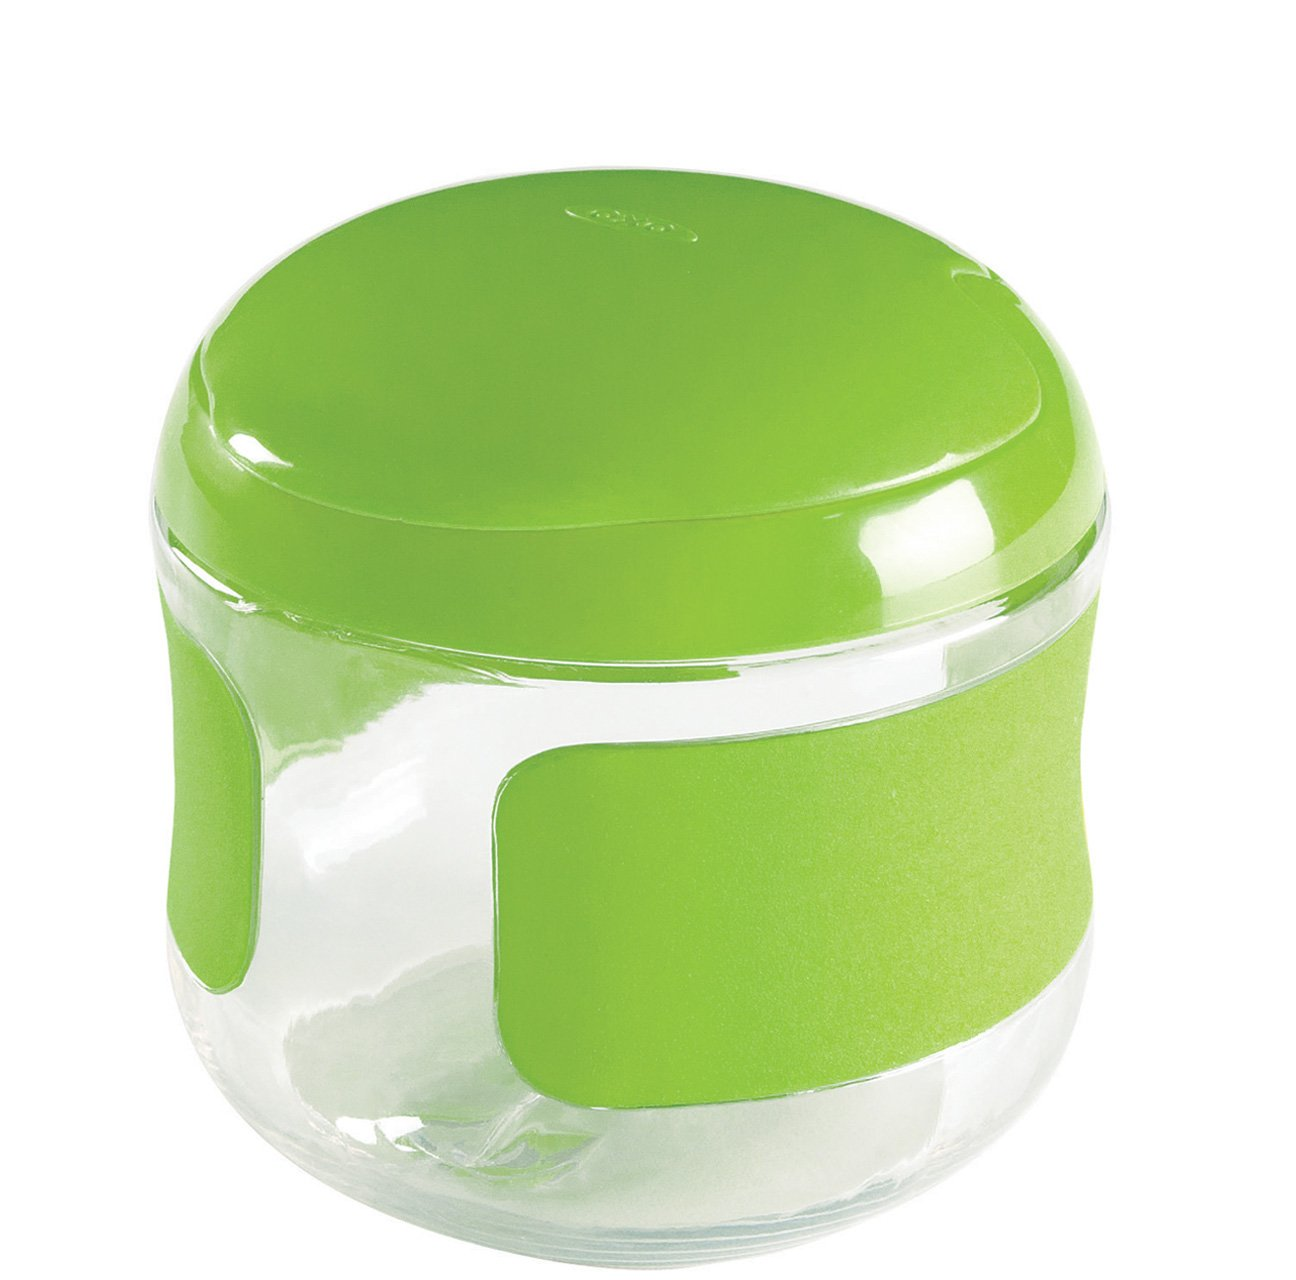 OXO Tot Flip-Top Snack Cup - Green - 5 Ounce